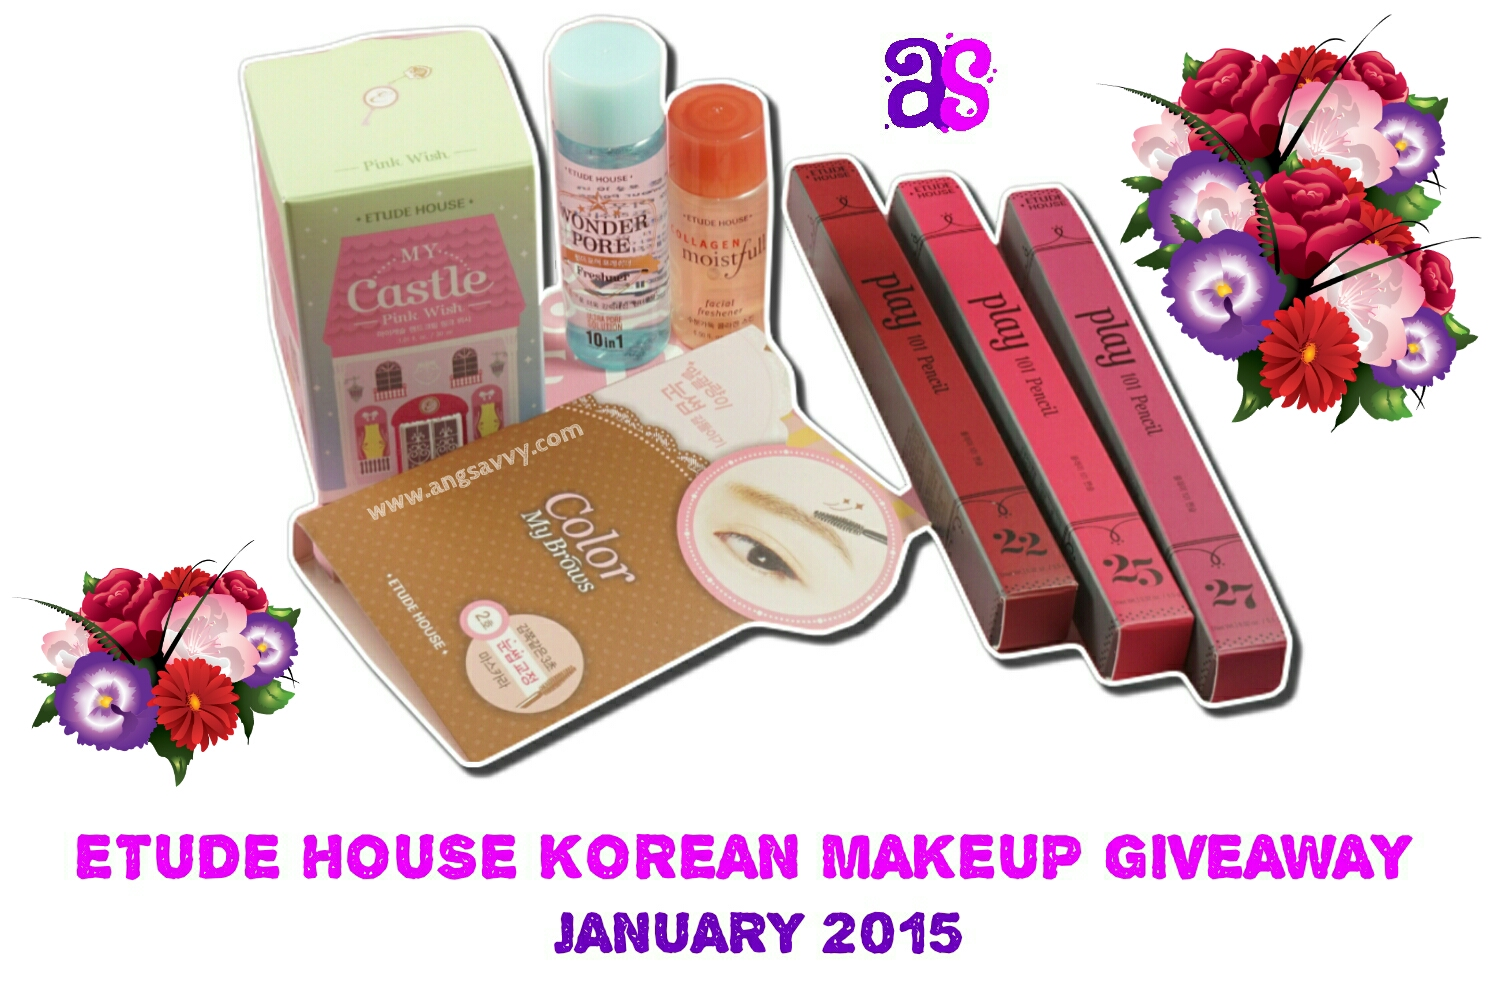 Etude House Korean Makeup International Giveaway